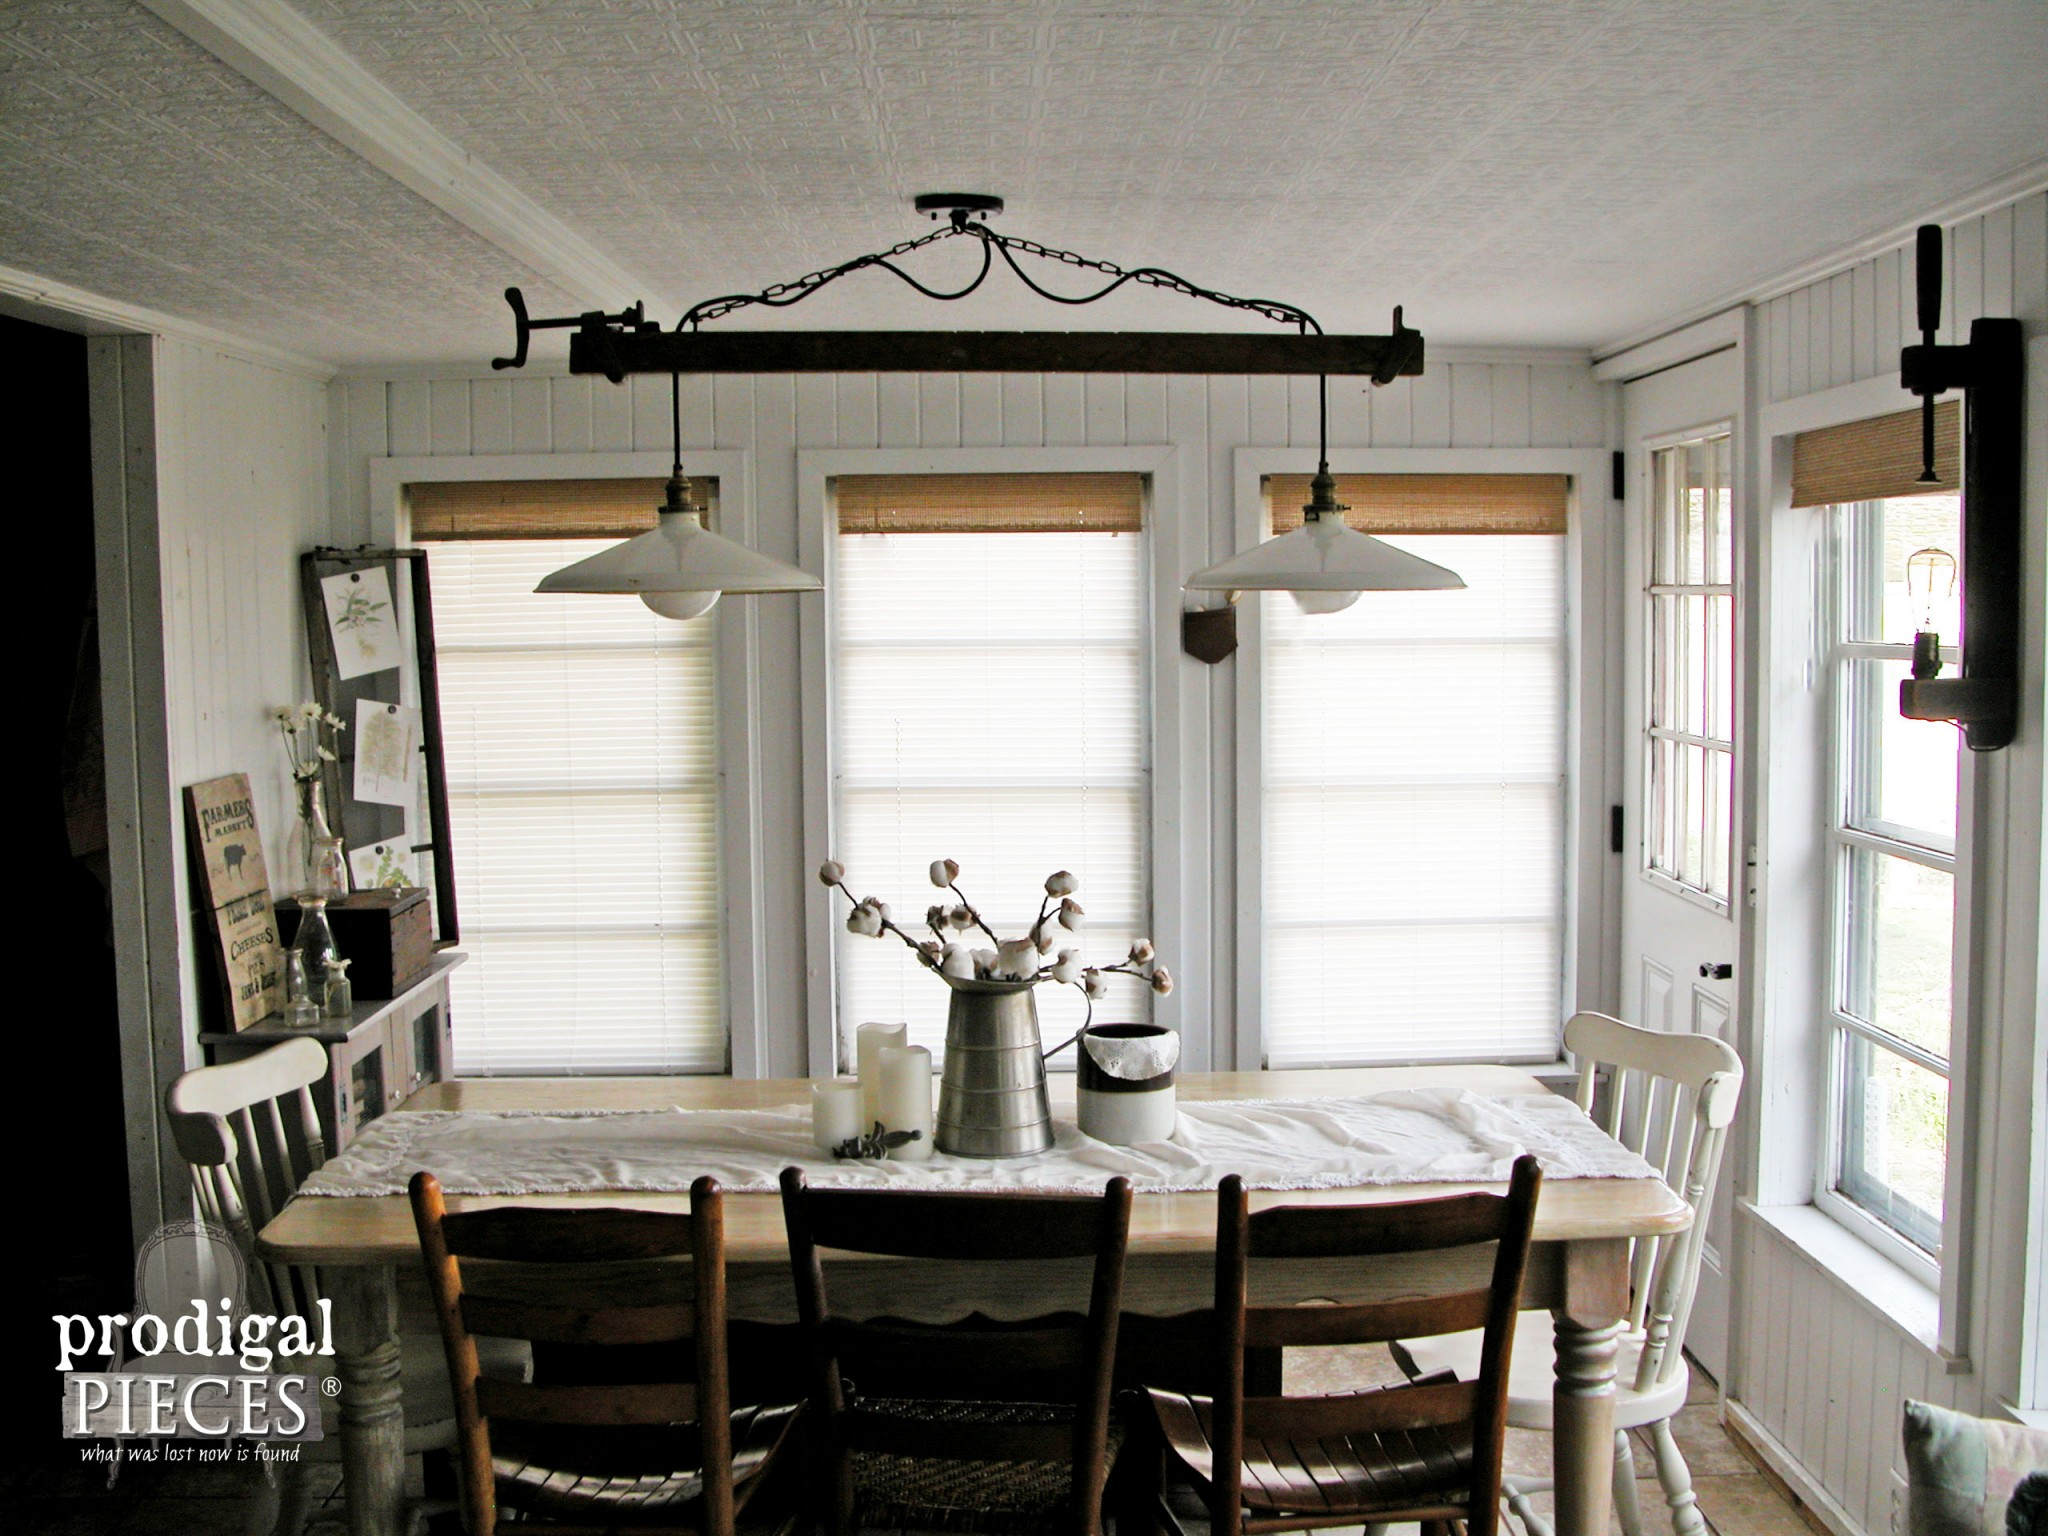 Farmhouse style decor how to add it to your home for Farmhouse style kitchen lighting